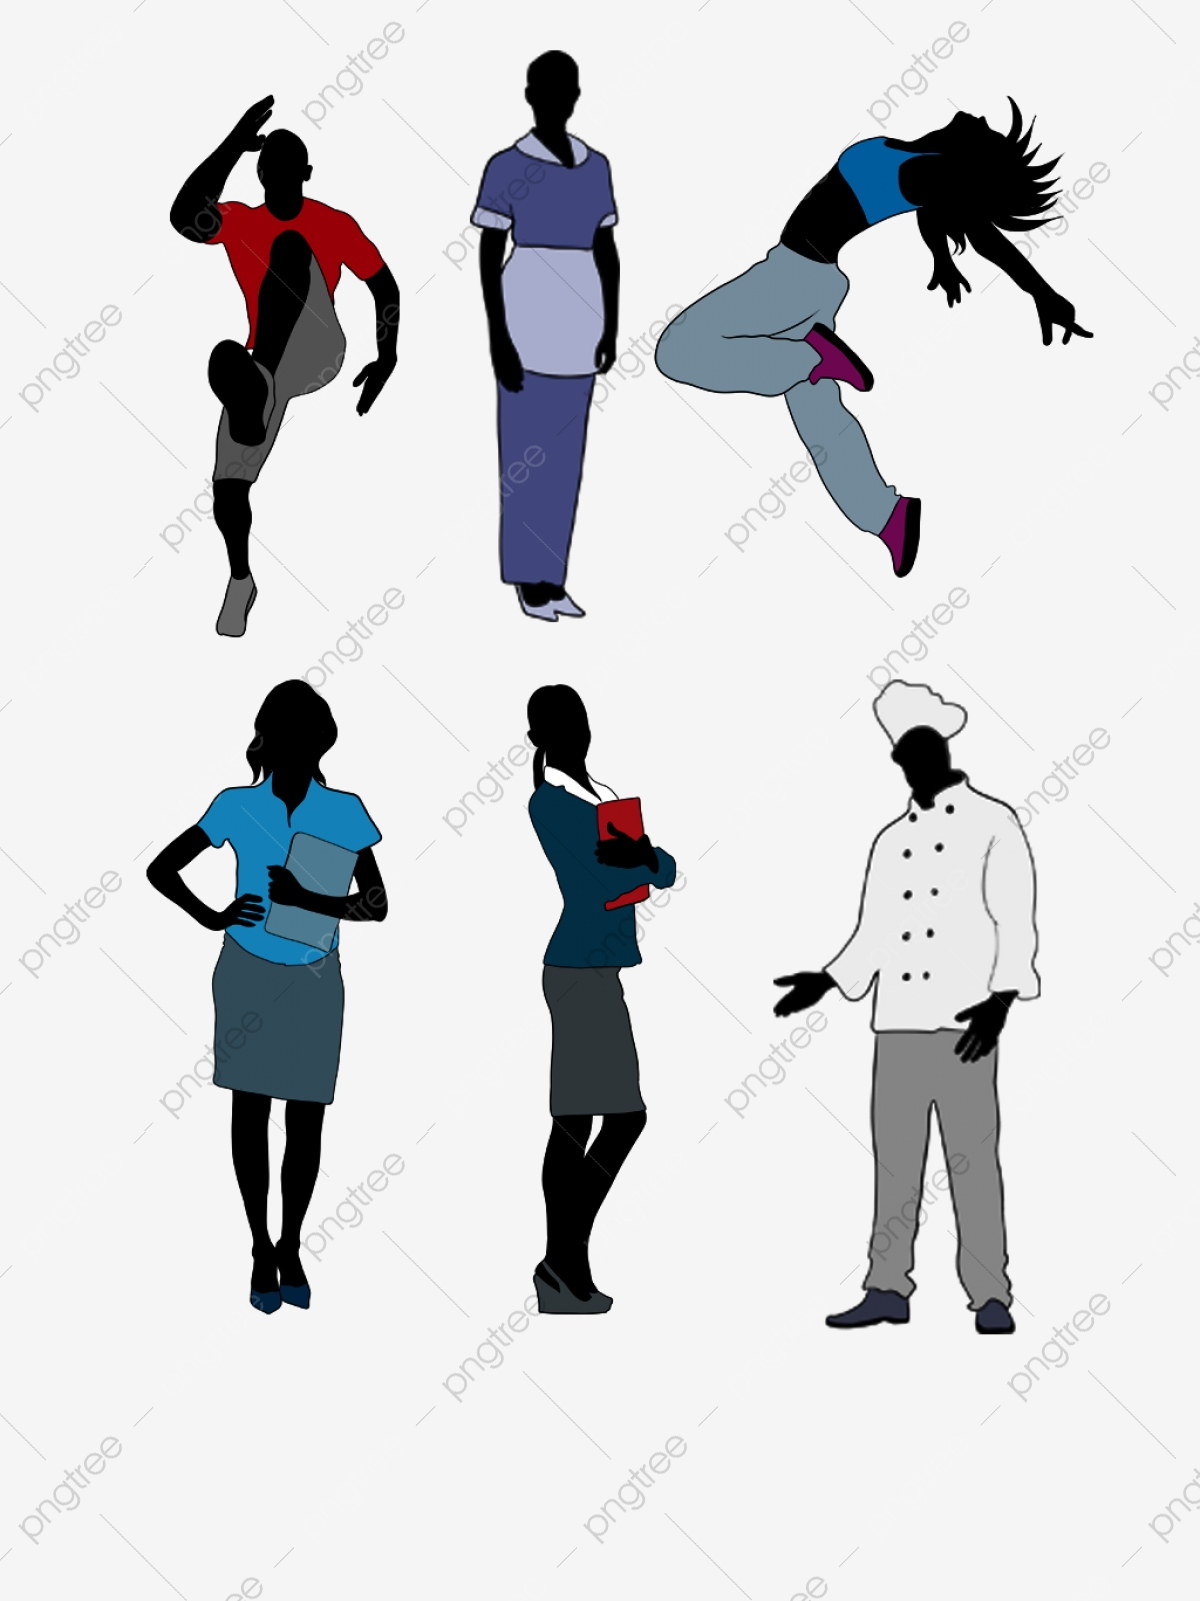 Professional clipart one man. Character silhouette picture